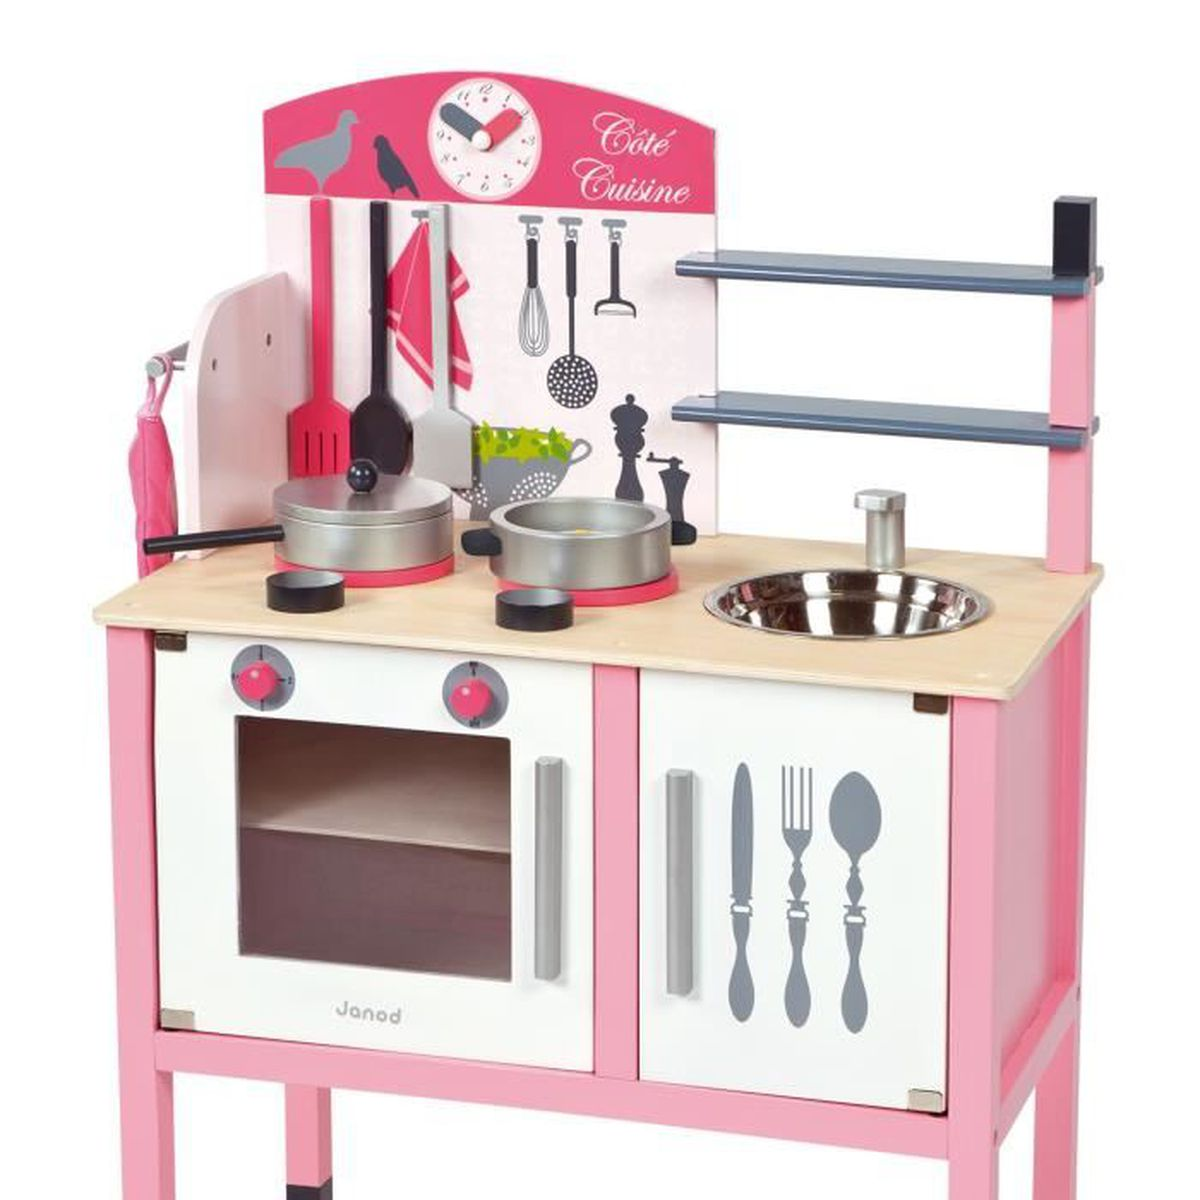 maxi cuisine cuisine en bois rose pour enfant achat. Black Bedroom Furniture Sets. Home Design Ideas